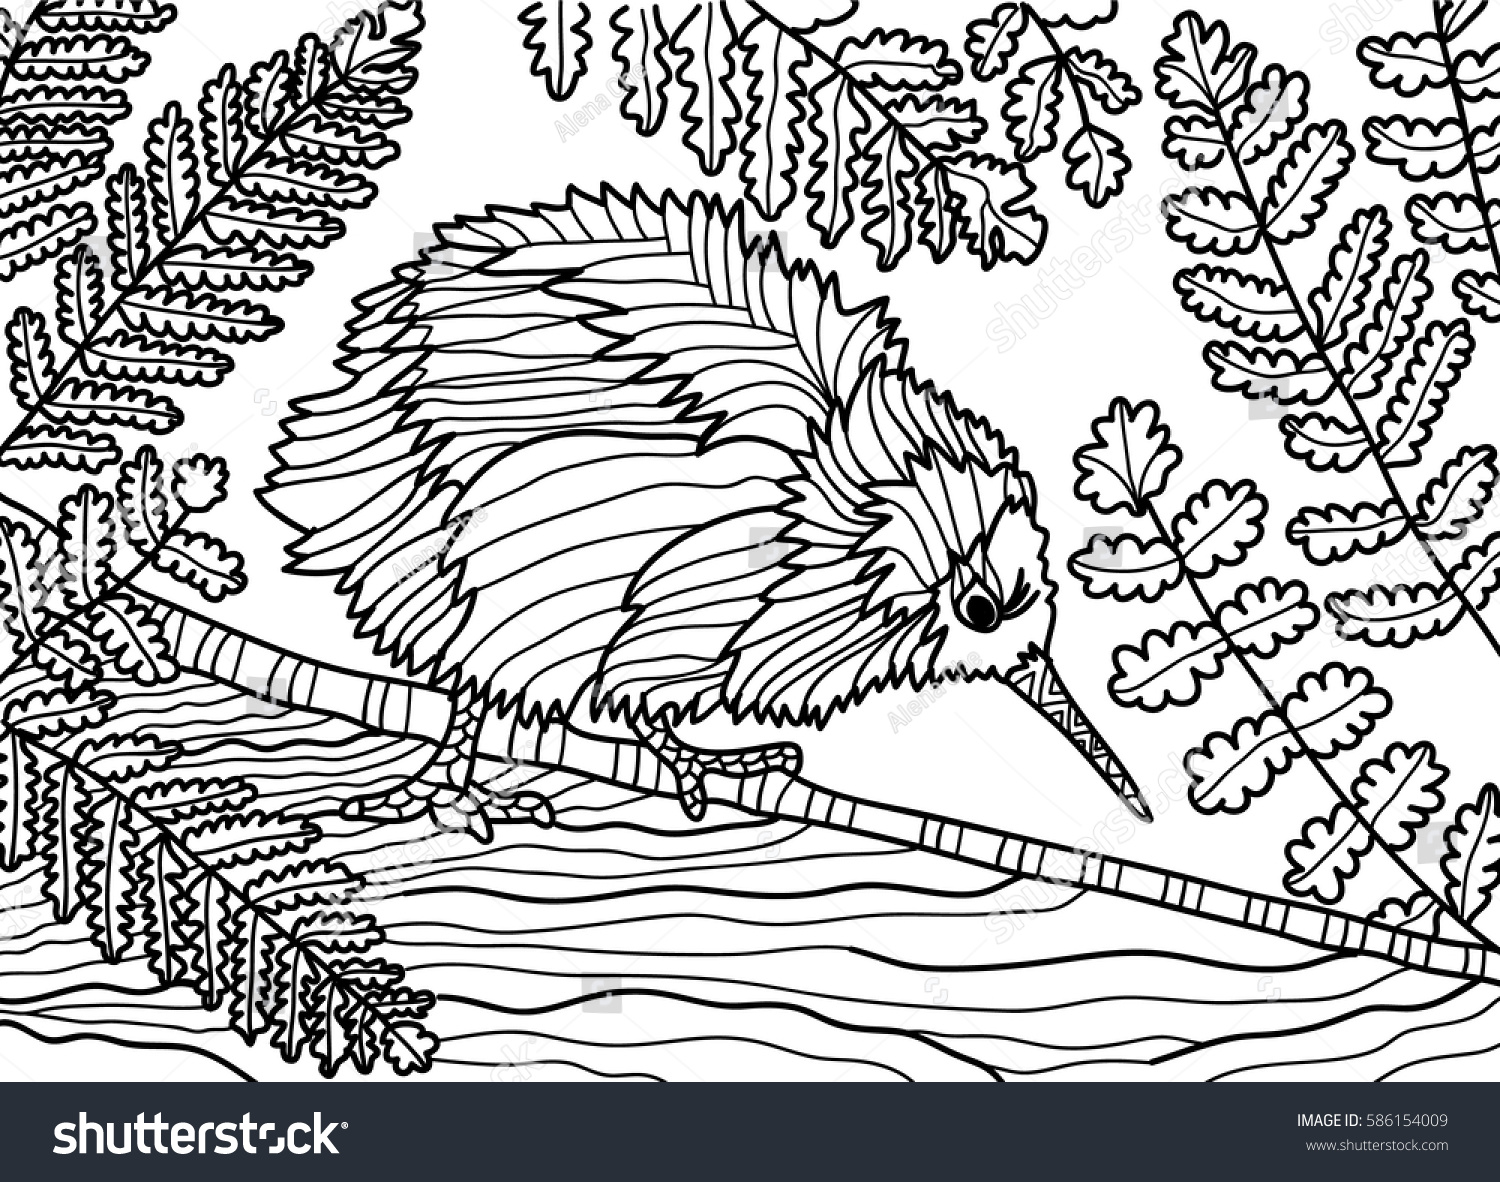 Coloring Book For Adults Monochrome Drawing Of A Kiwi Bird With Fern Ink